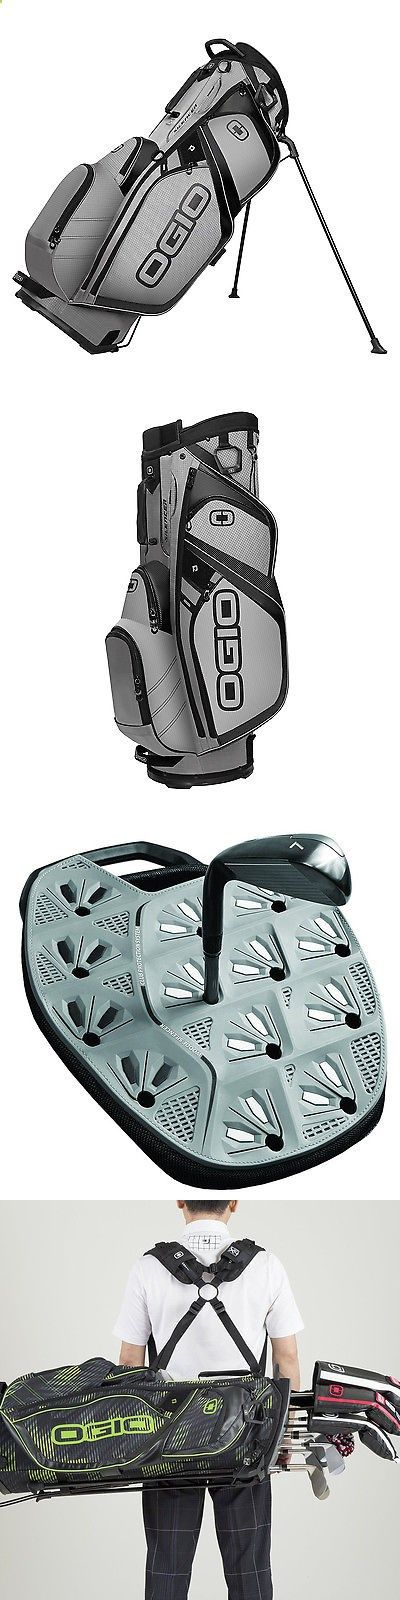 Golf Club Bags 30109: Ogio Silencer Stand Protective And Quiet Golf Bag With 14-Way Top, Pewter Gray BUY IT NOW ONLY: $171.99